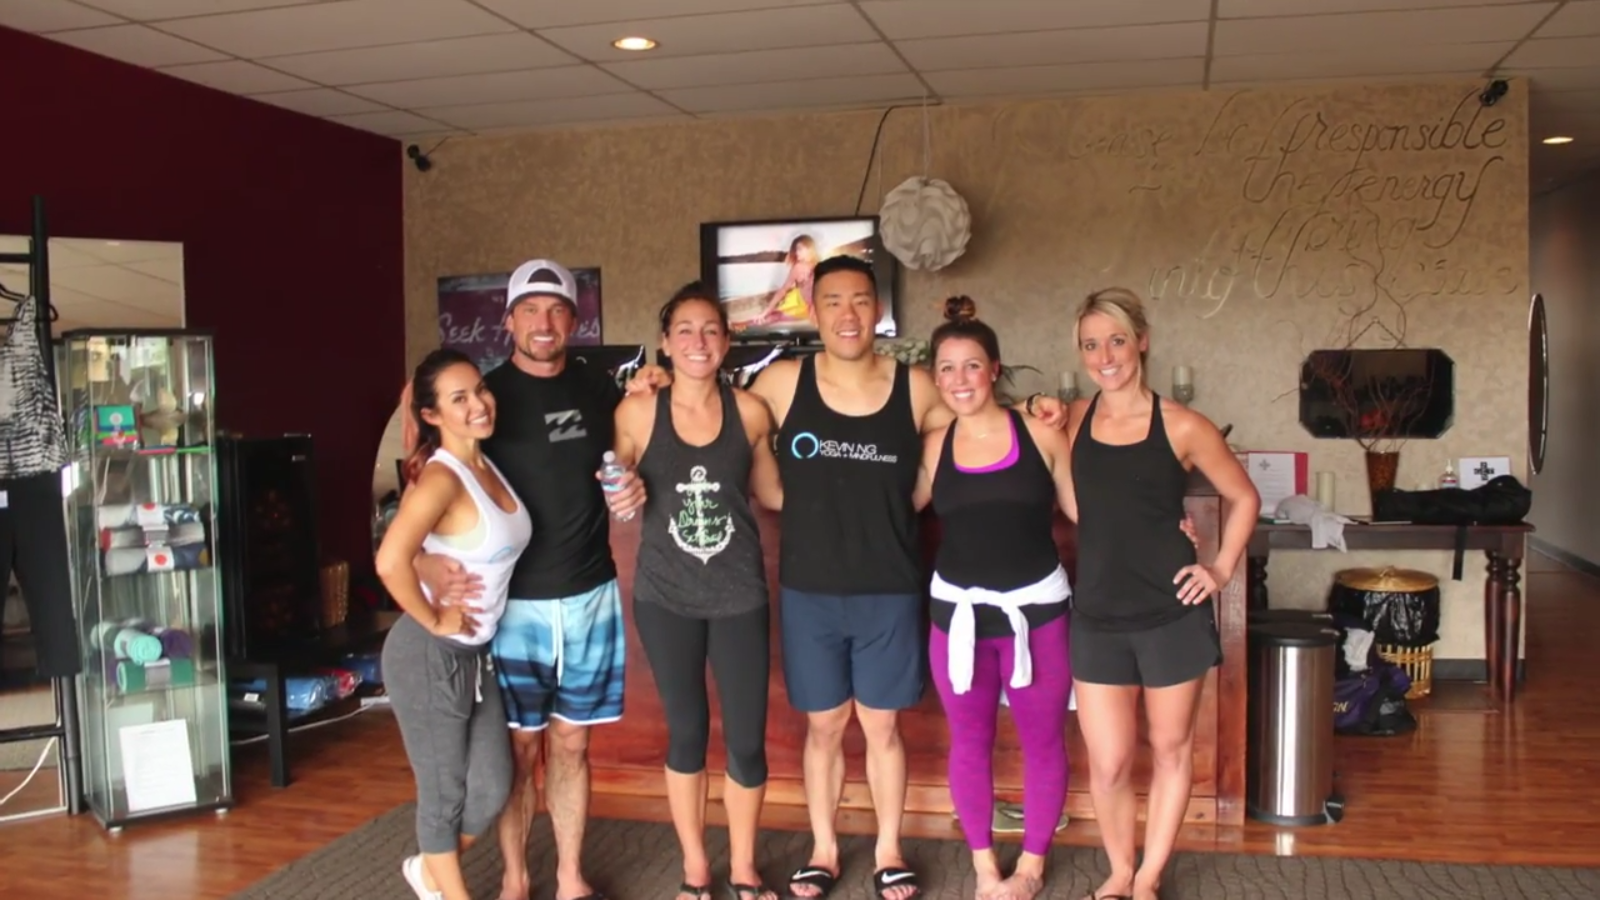 Our Team Had a Great Private Hot Yoga Class